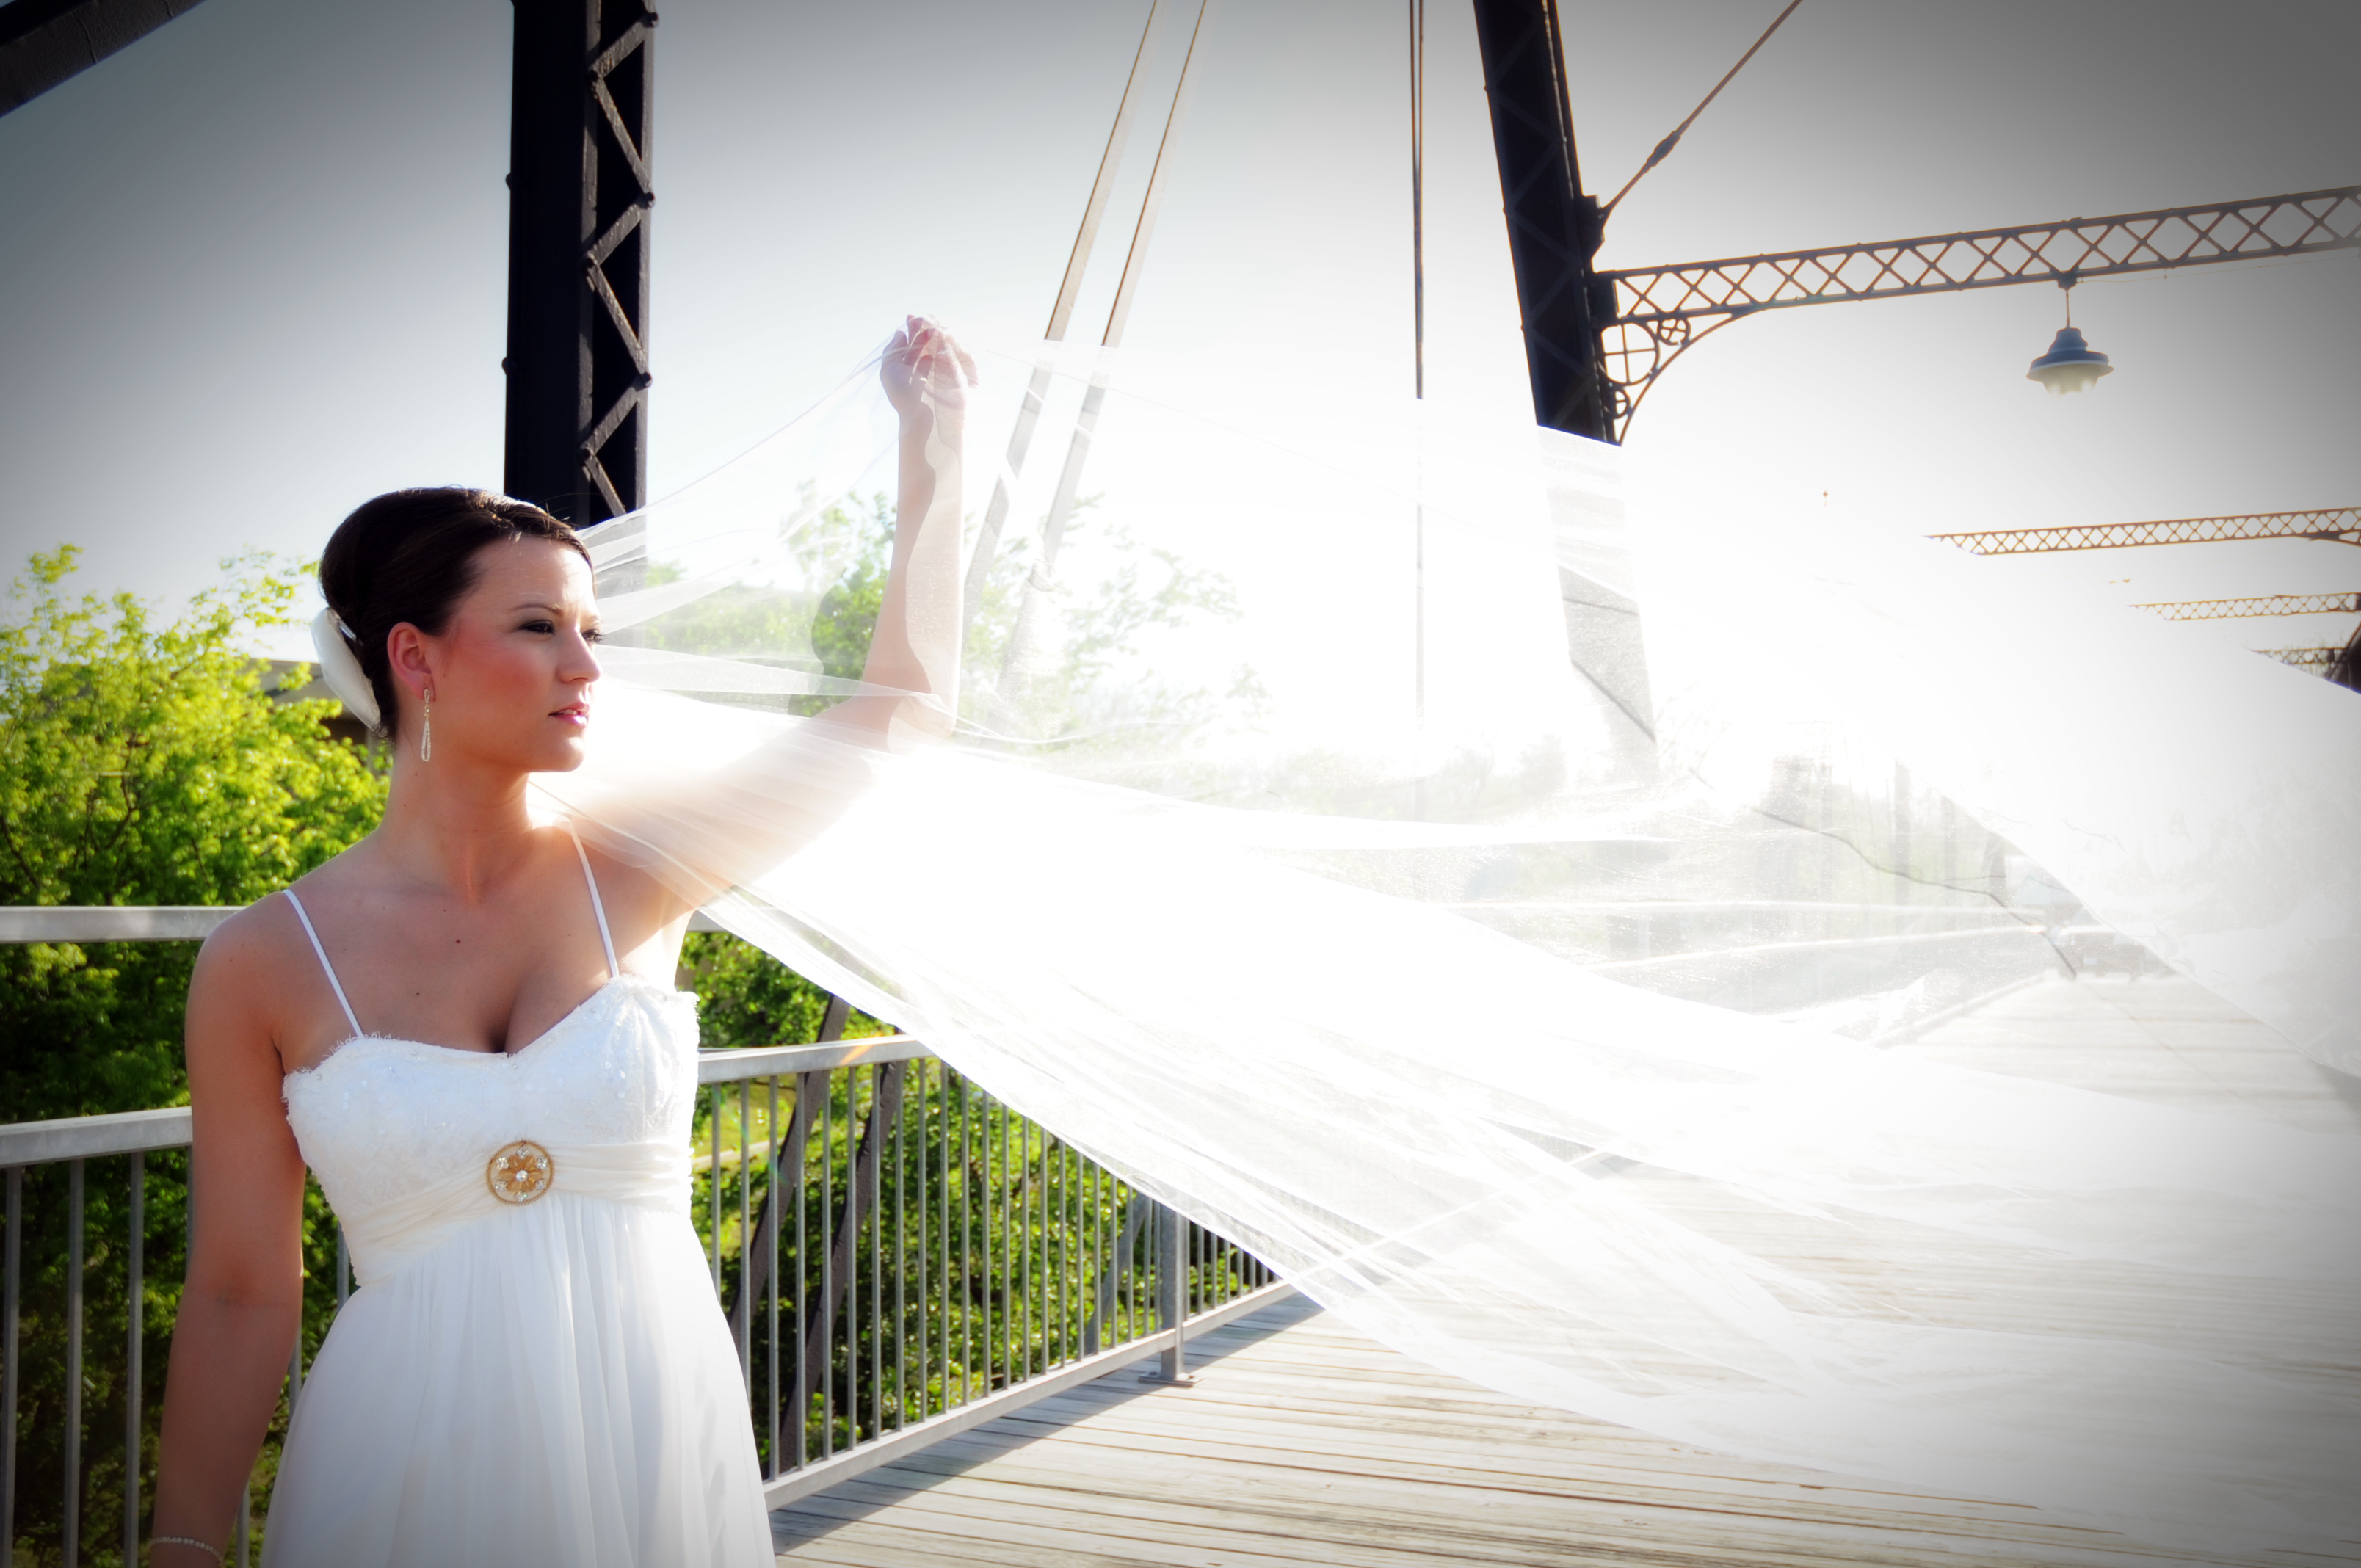 Beauty, Inspiration, Wedding Dresses, Veils, Fashion, dress, Bride, Veil, Hair, Board, Bridge, Wind, Caitlins creations